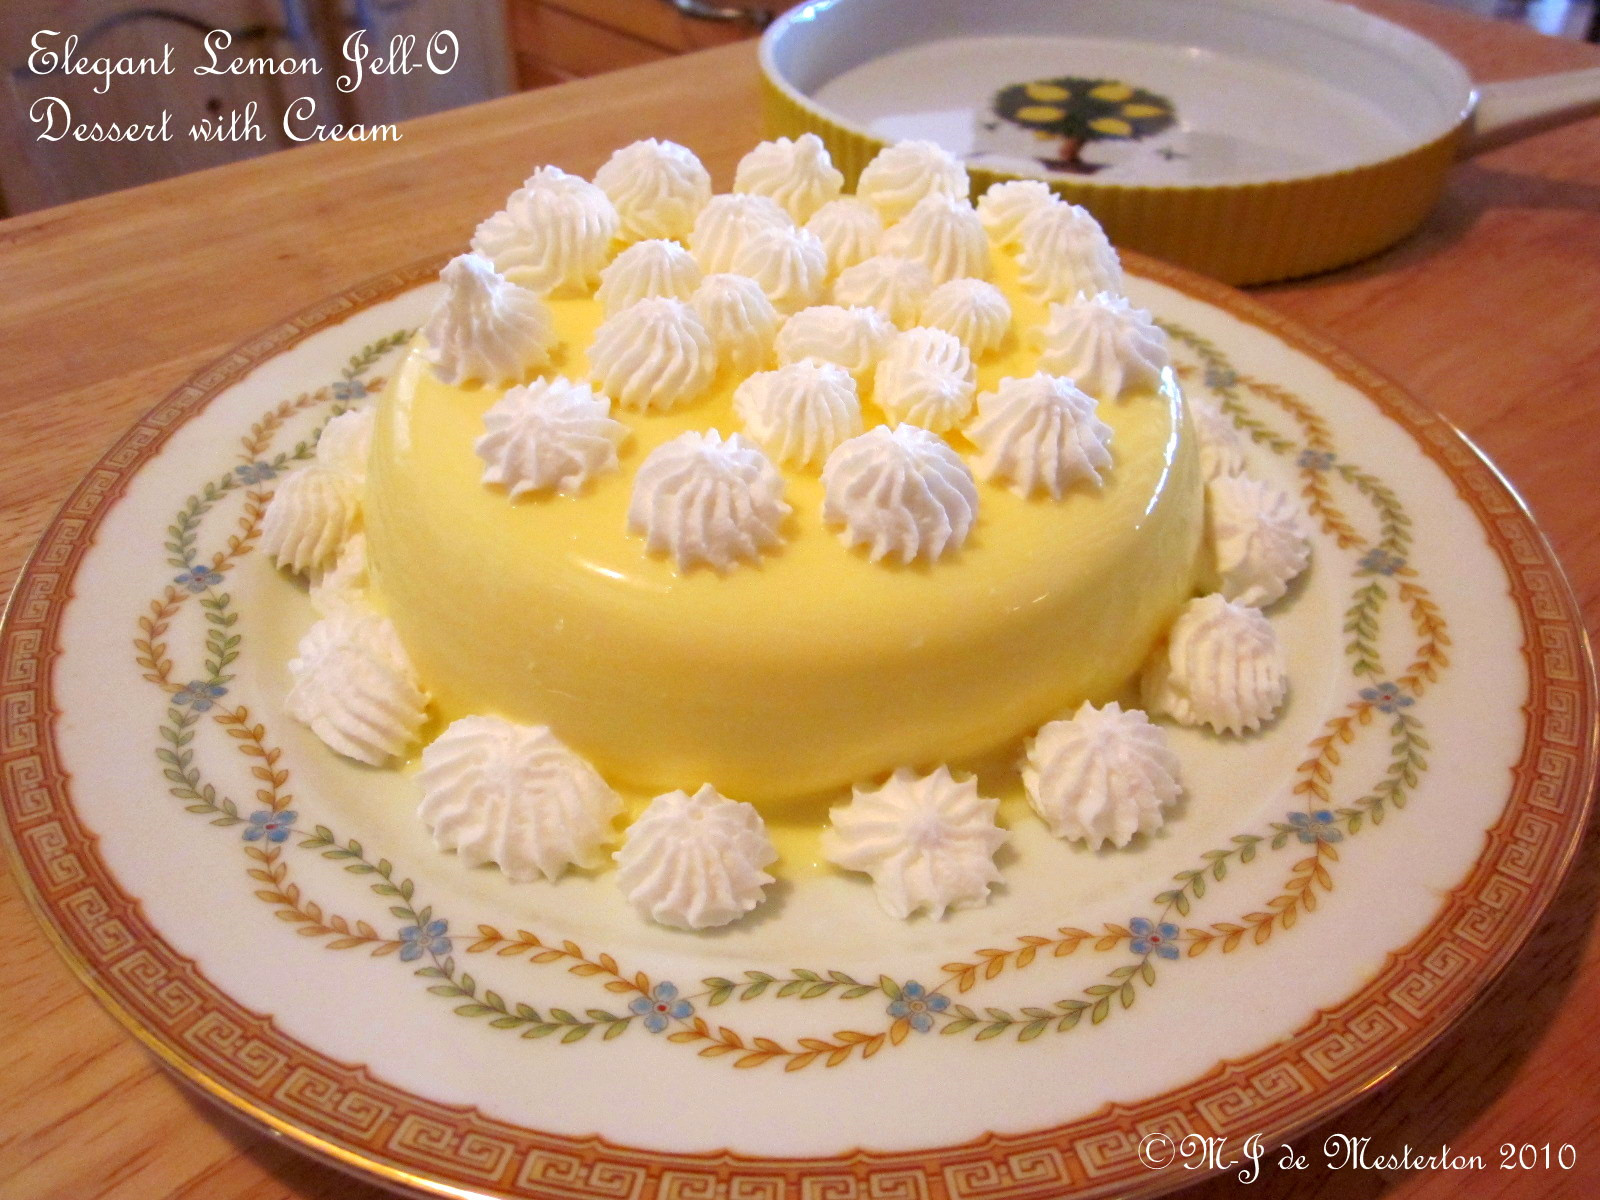 Low Carb Desserts With Cream Cheese  M J s Elegant Cuisine Elegant Jell O Dessert with Cream